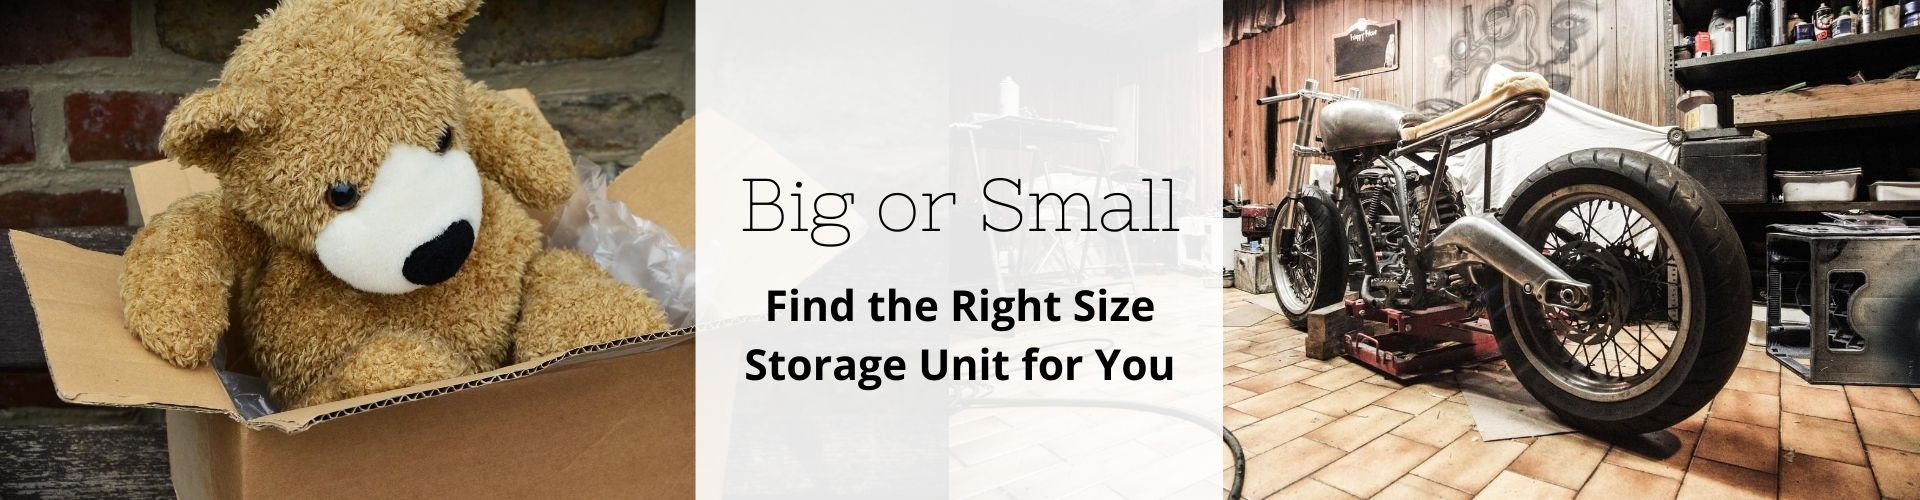 Small Storage Unit